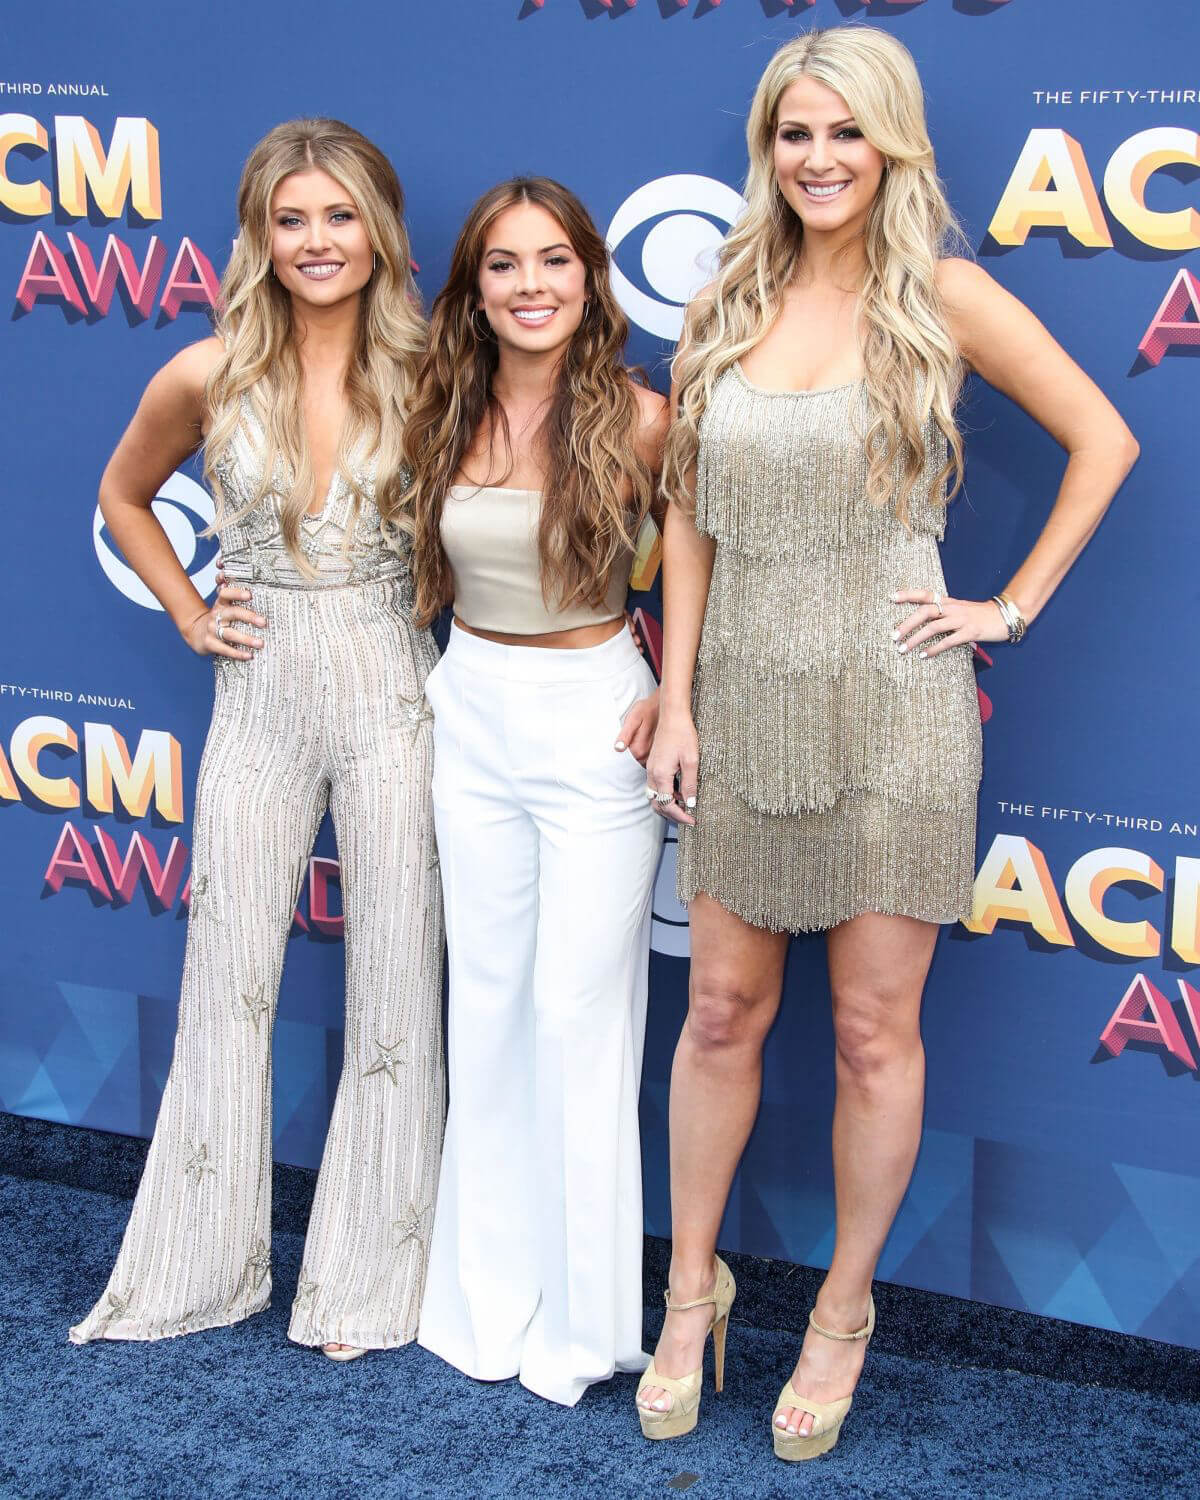 Jennifer Wayne, Naomi Cooke and Hannah Mulholland Stills at 2018 ACM Awards in Las Vegas 2018/04/15 12